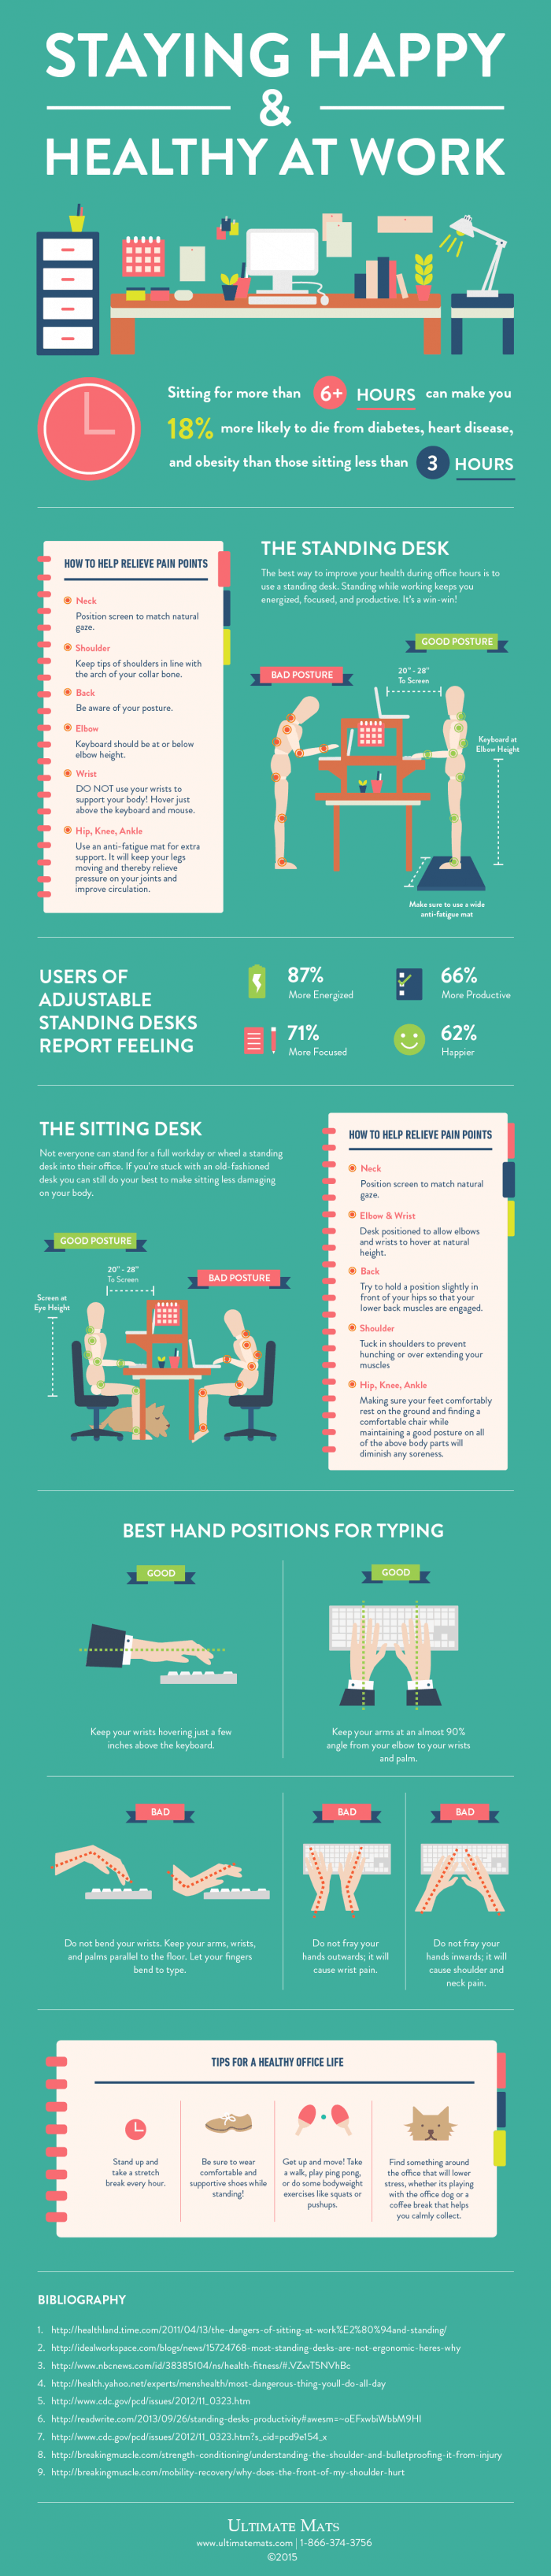 Tips on staying happy and health at work.